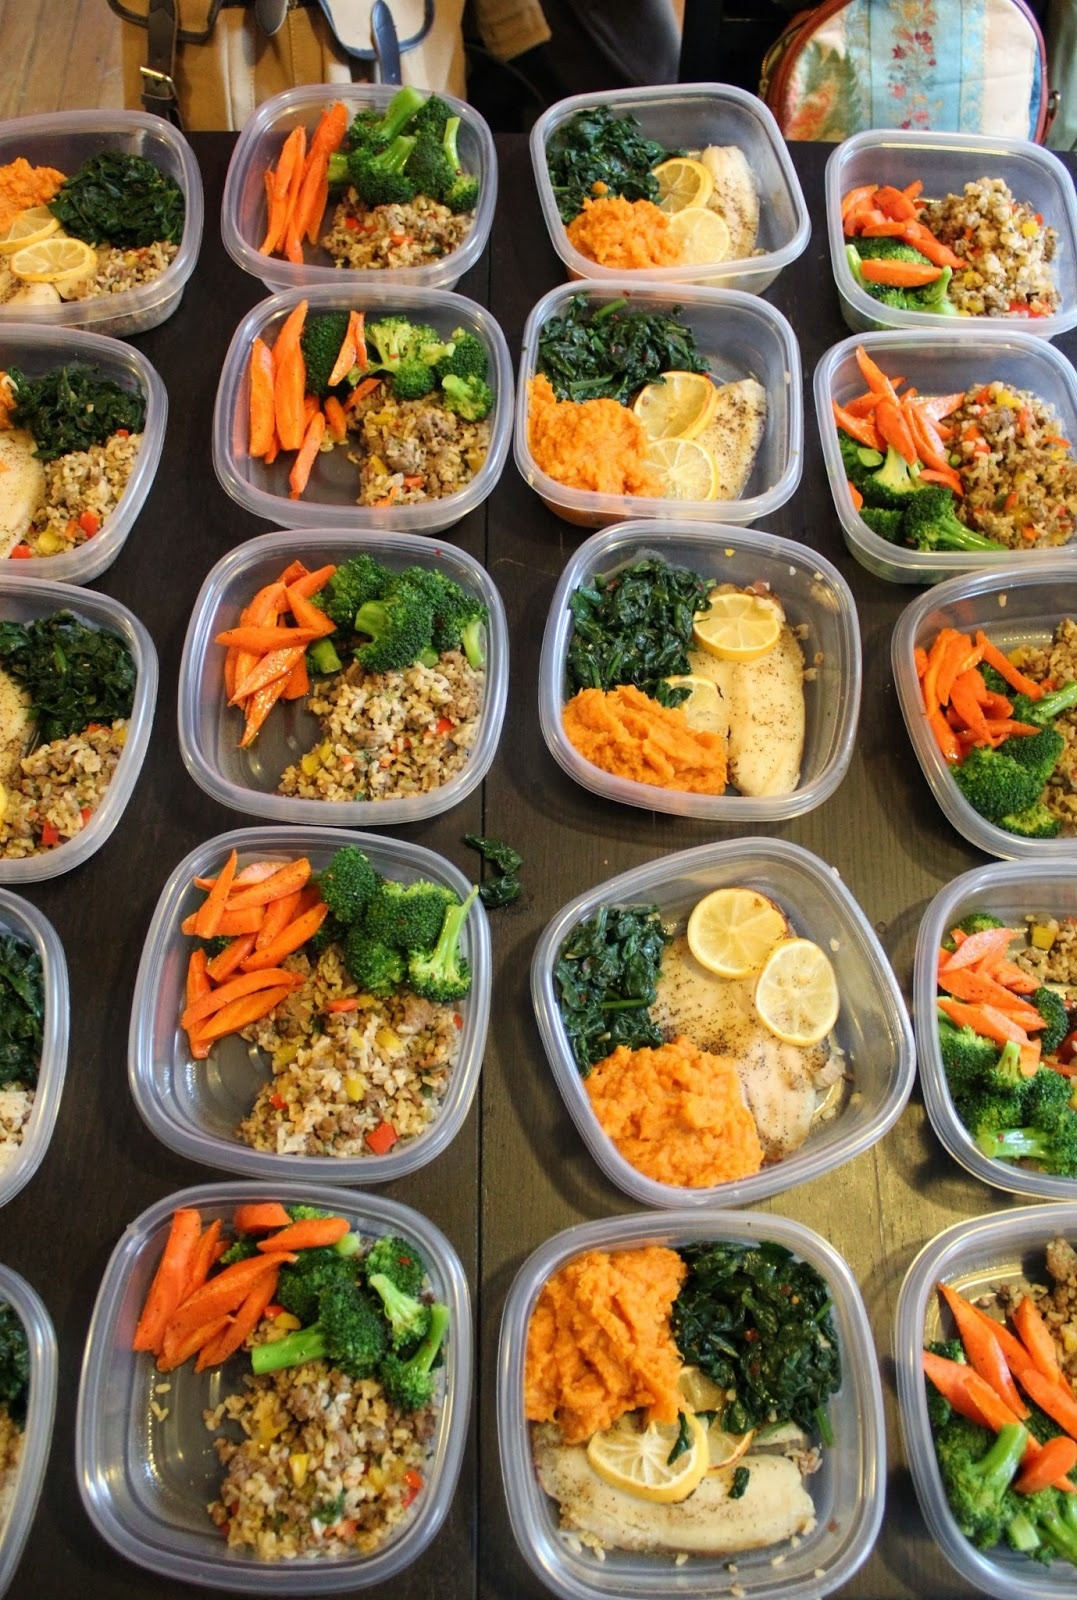 Healthy Easy Dinner  Healthy Meal Prep Ideas For The WeekWritings and Papers